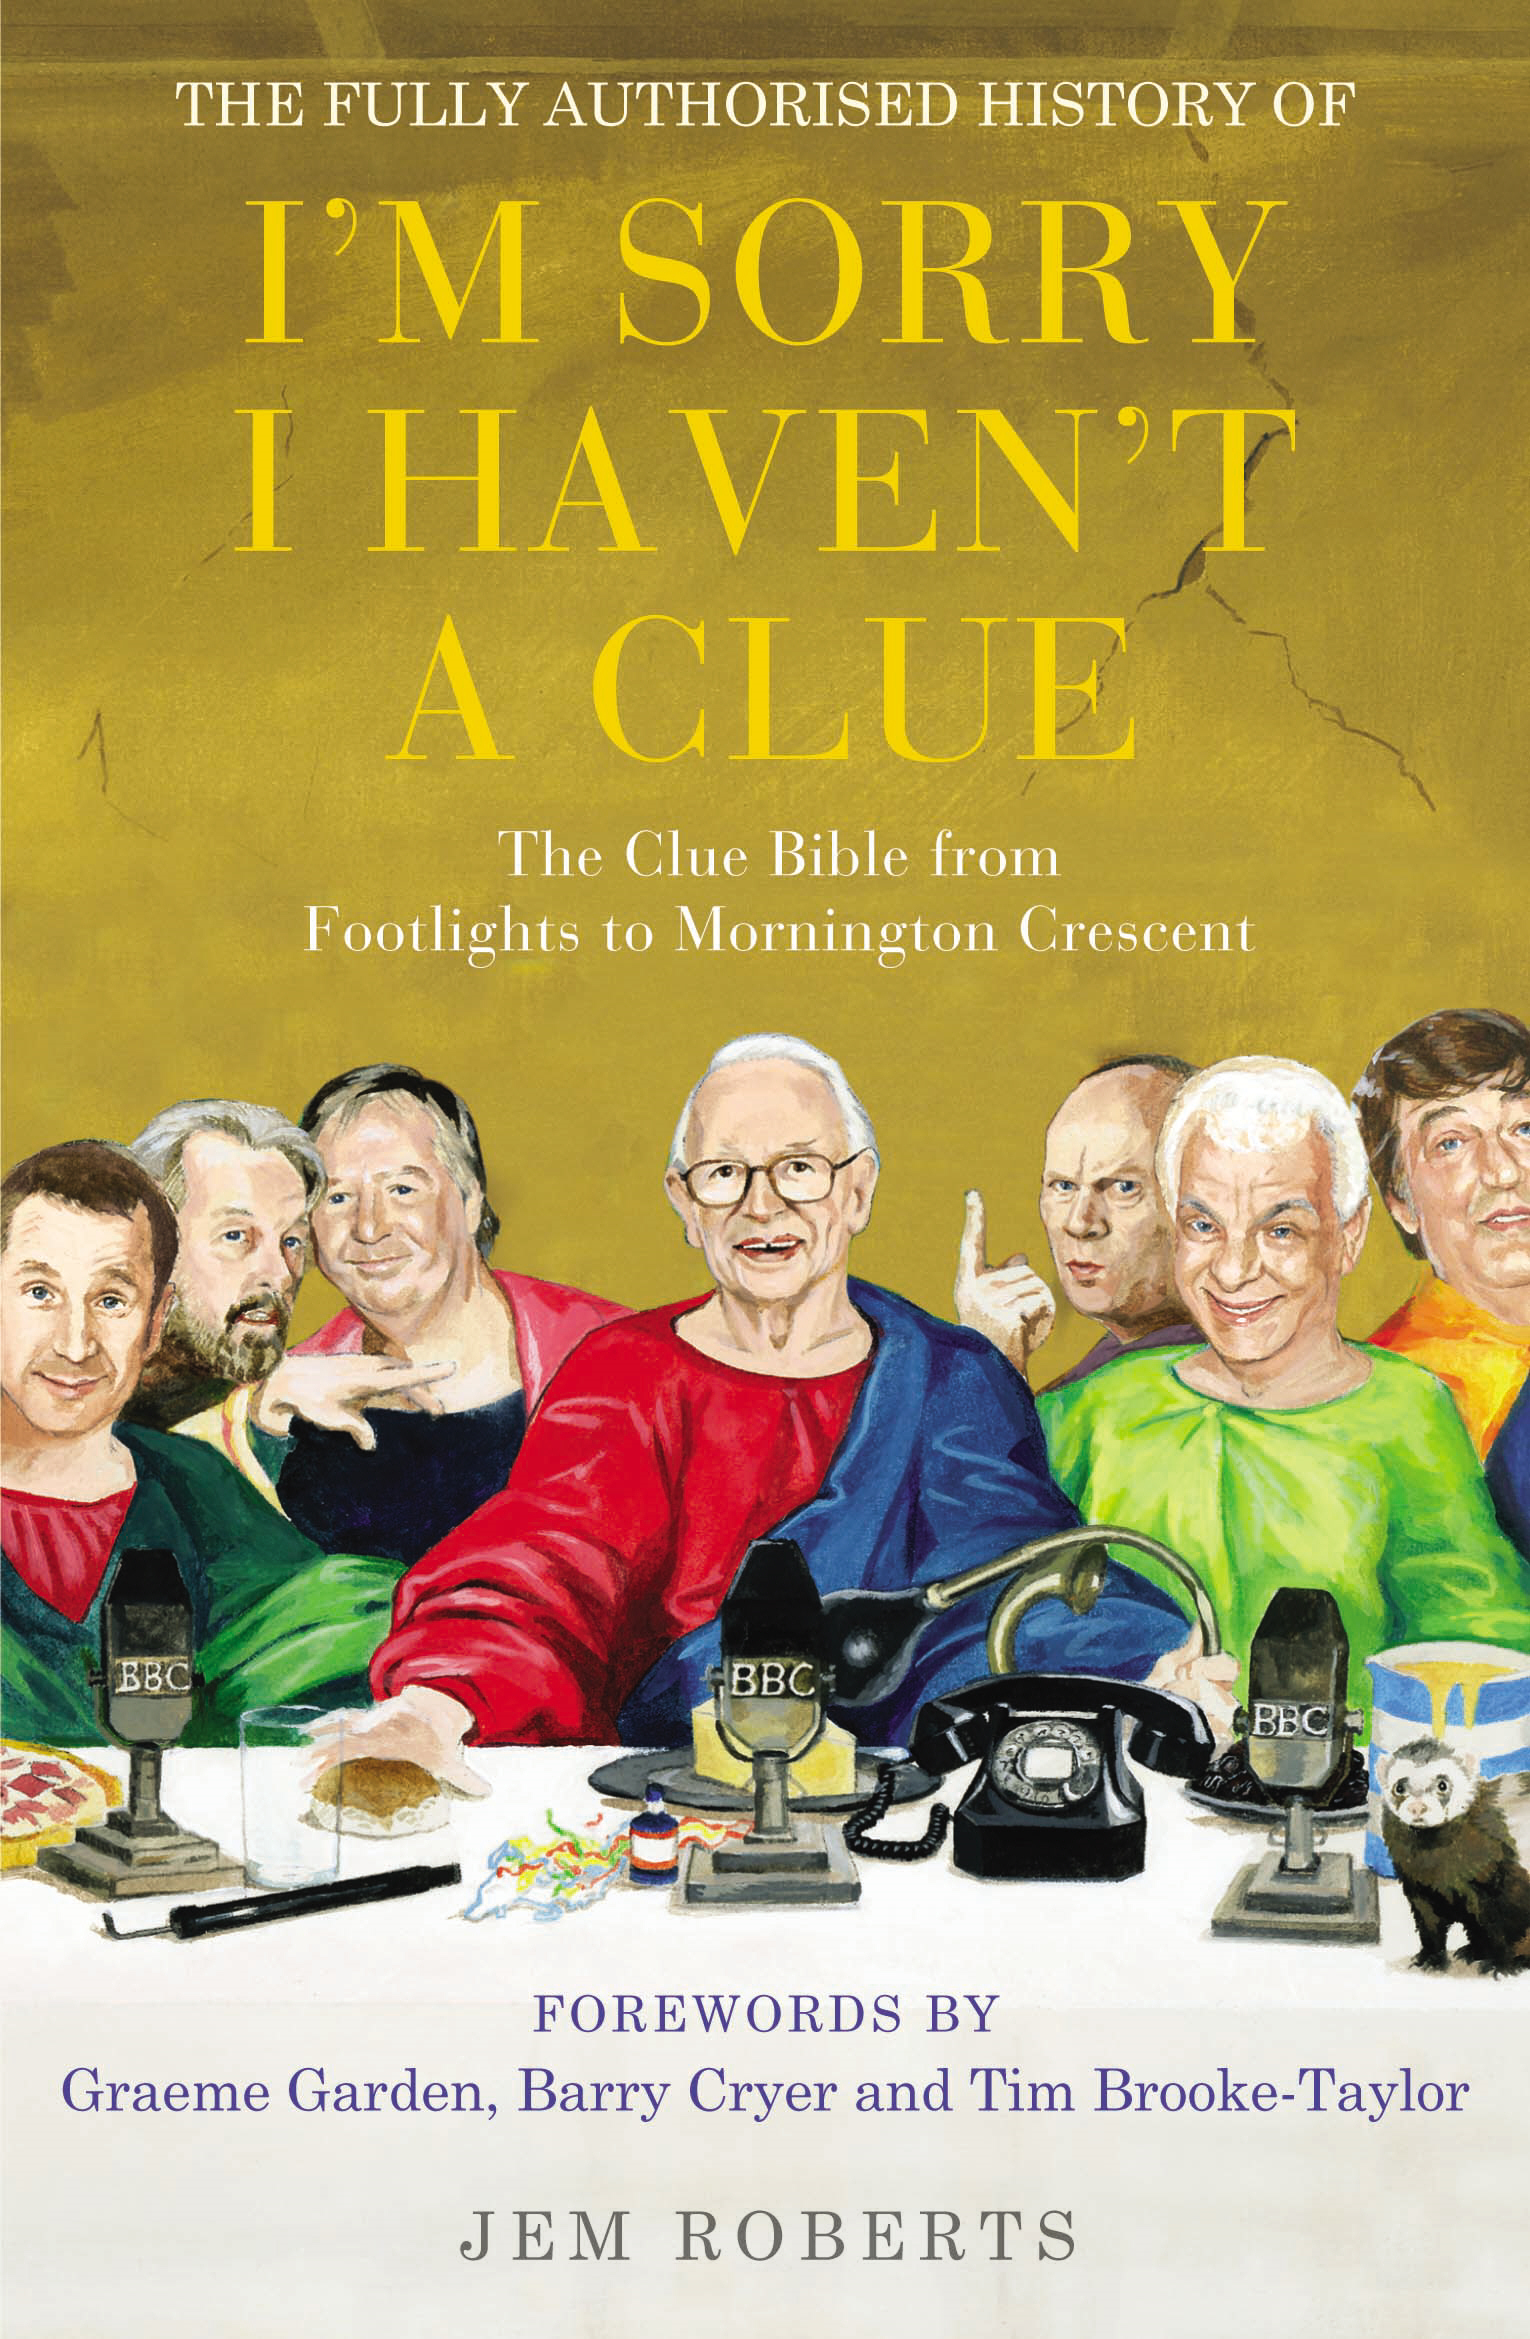 The Fully Authorised History of I'm Sorry I Haven't A Clue The Clue Bible from Footlights to Mornington Crescent